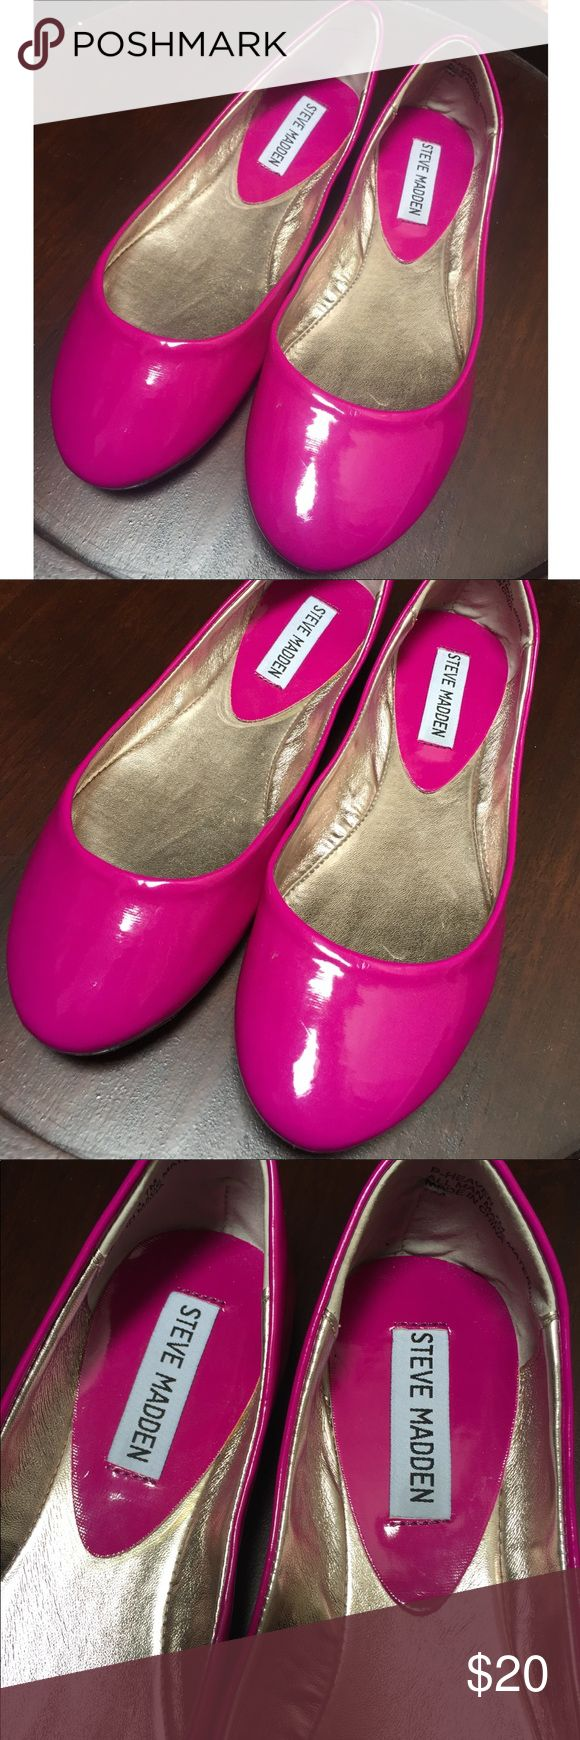 ☀️EUC Steve Madden Purple Ballet Flats Size 7 Steve Madden Purple/Pink Ballet Flats, size 7, in like-new condition. Worn only once. Steve Madden Shoes Flats & Loafers